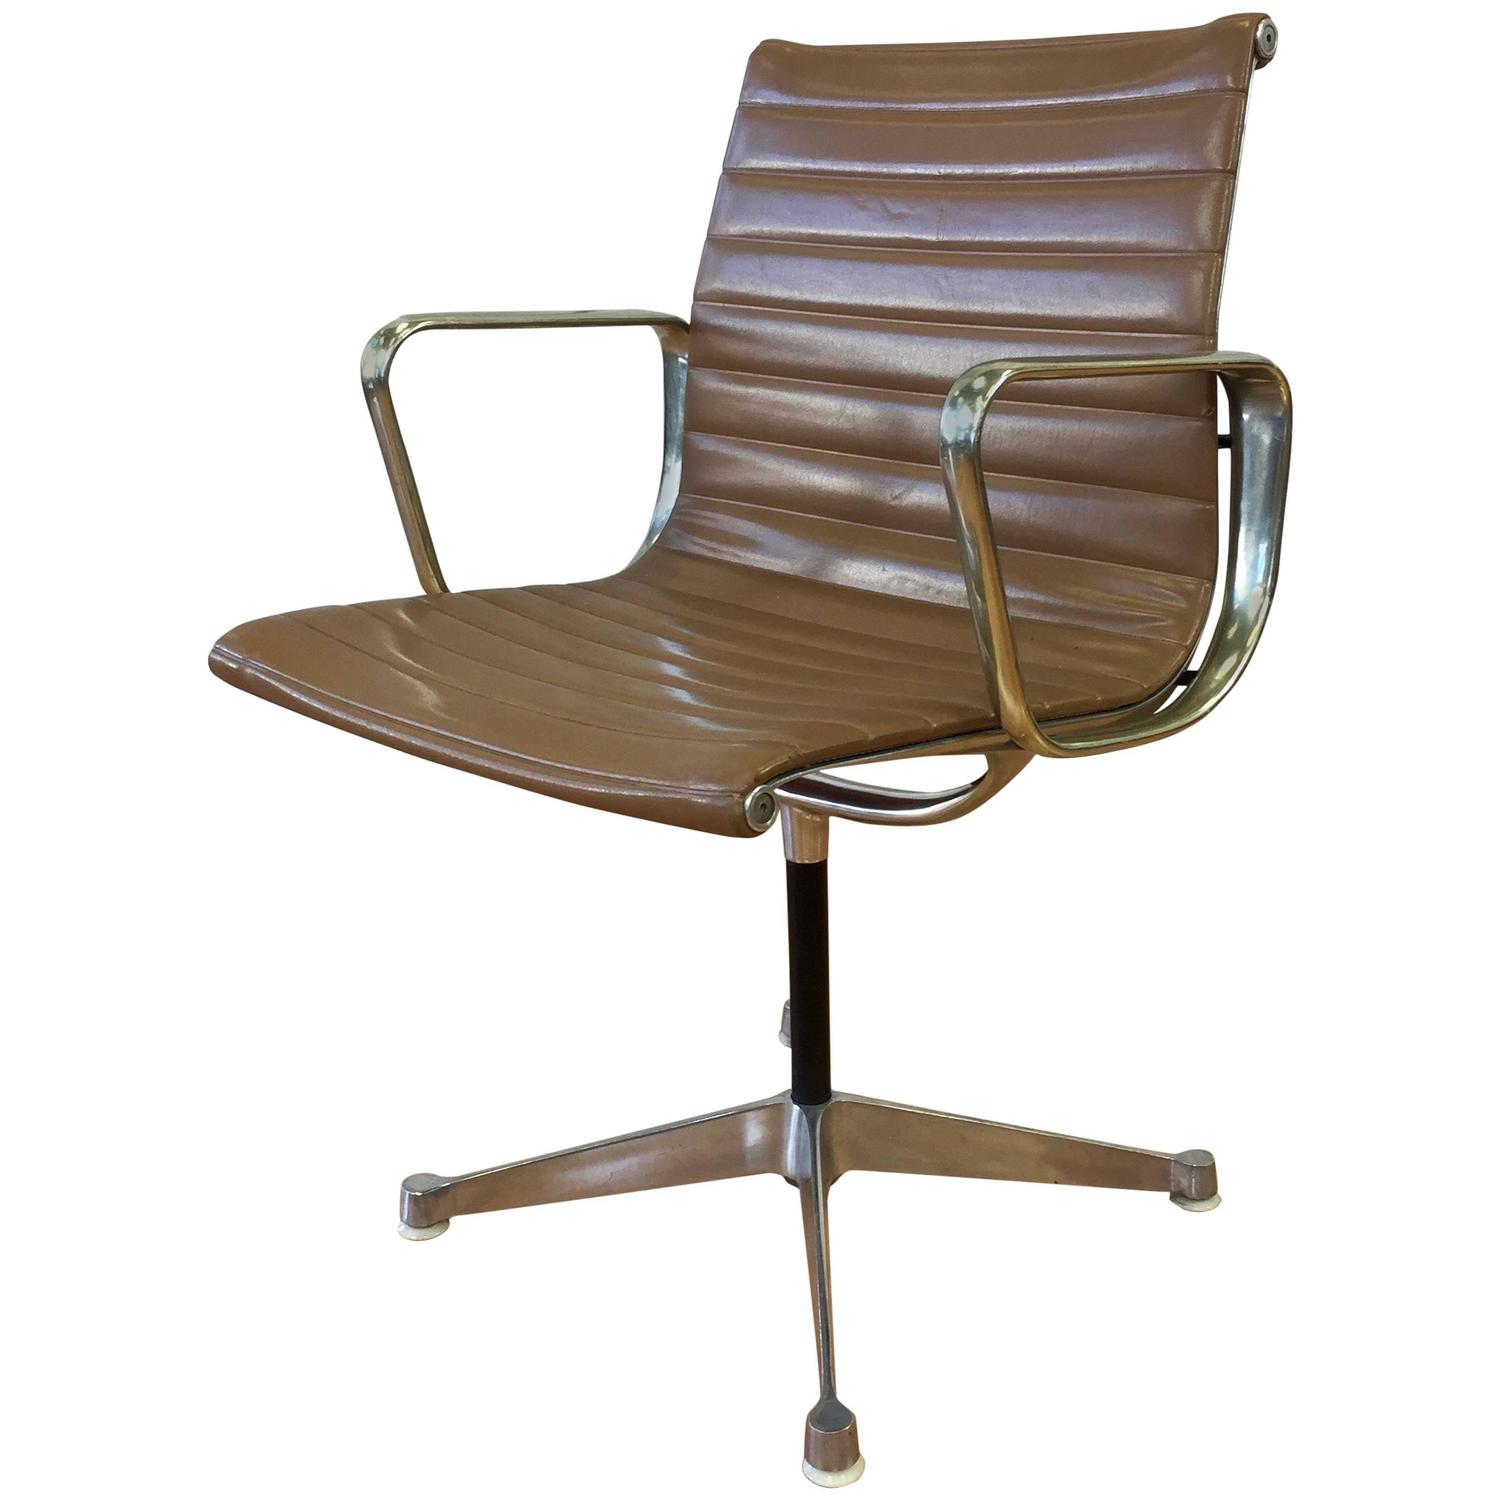 Early eames aluminium group management chair by herman for Herman miller eames aluminum group management chair